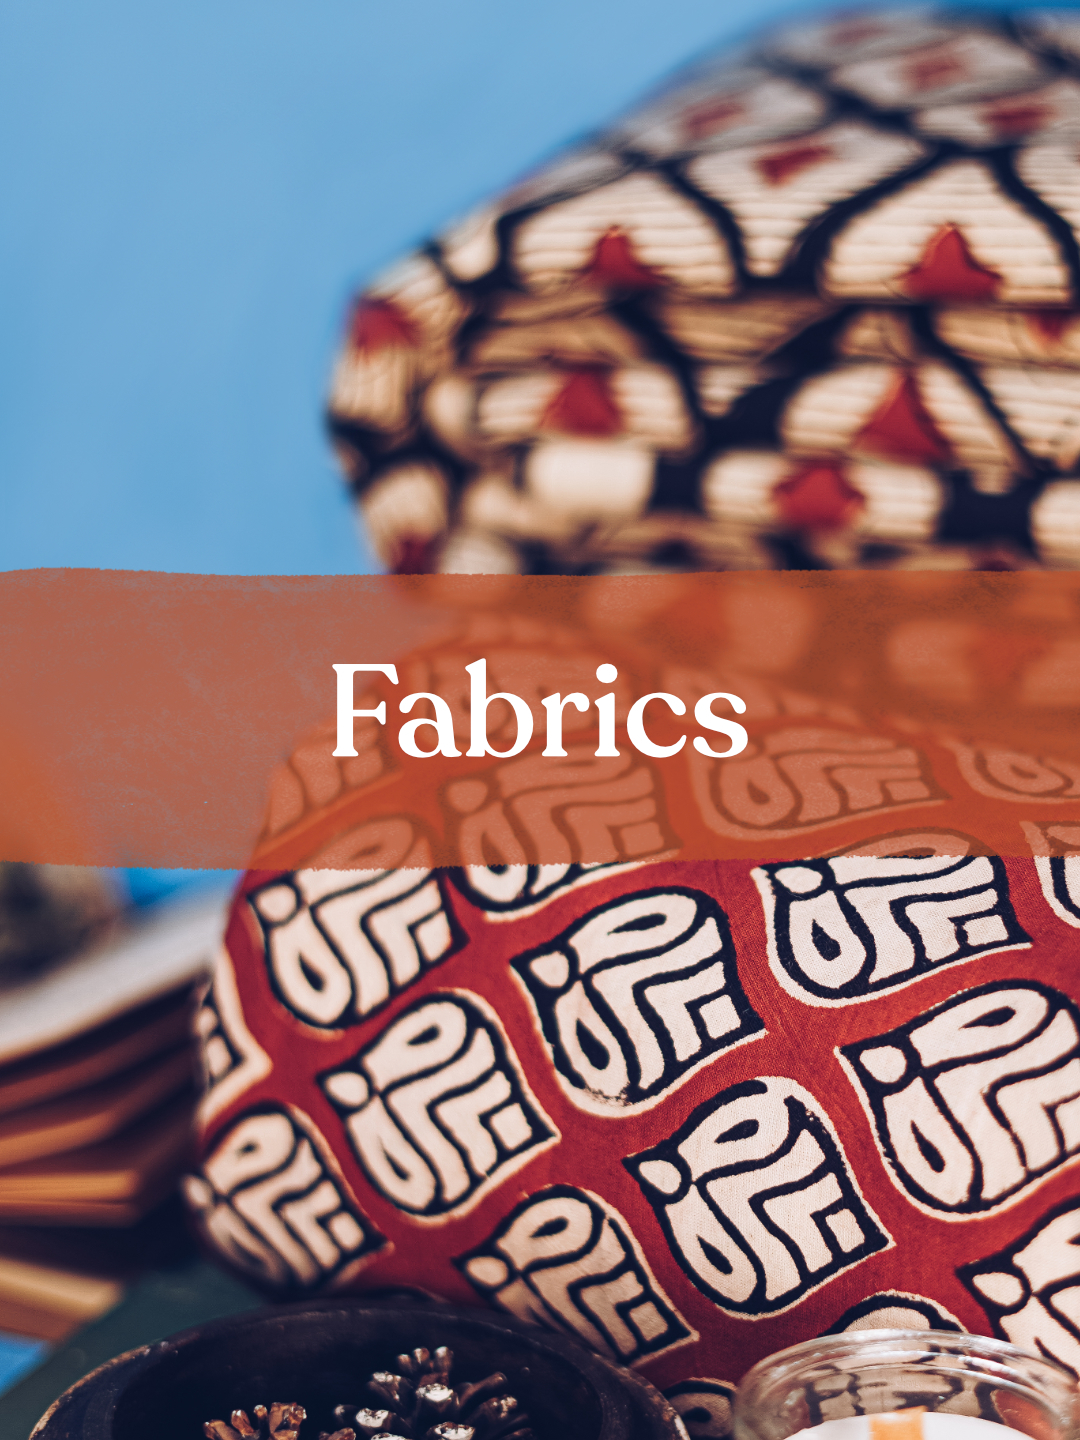 Not Just Fabrics, but a story!